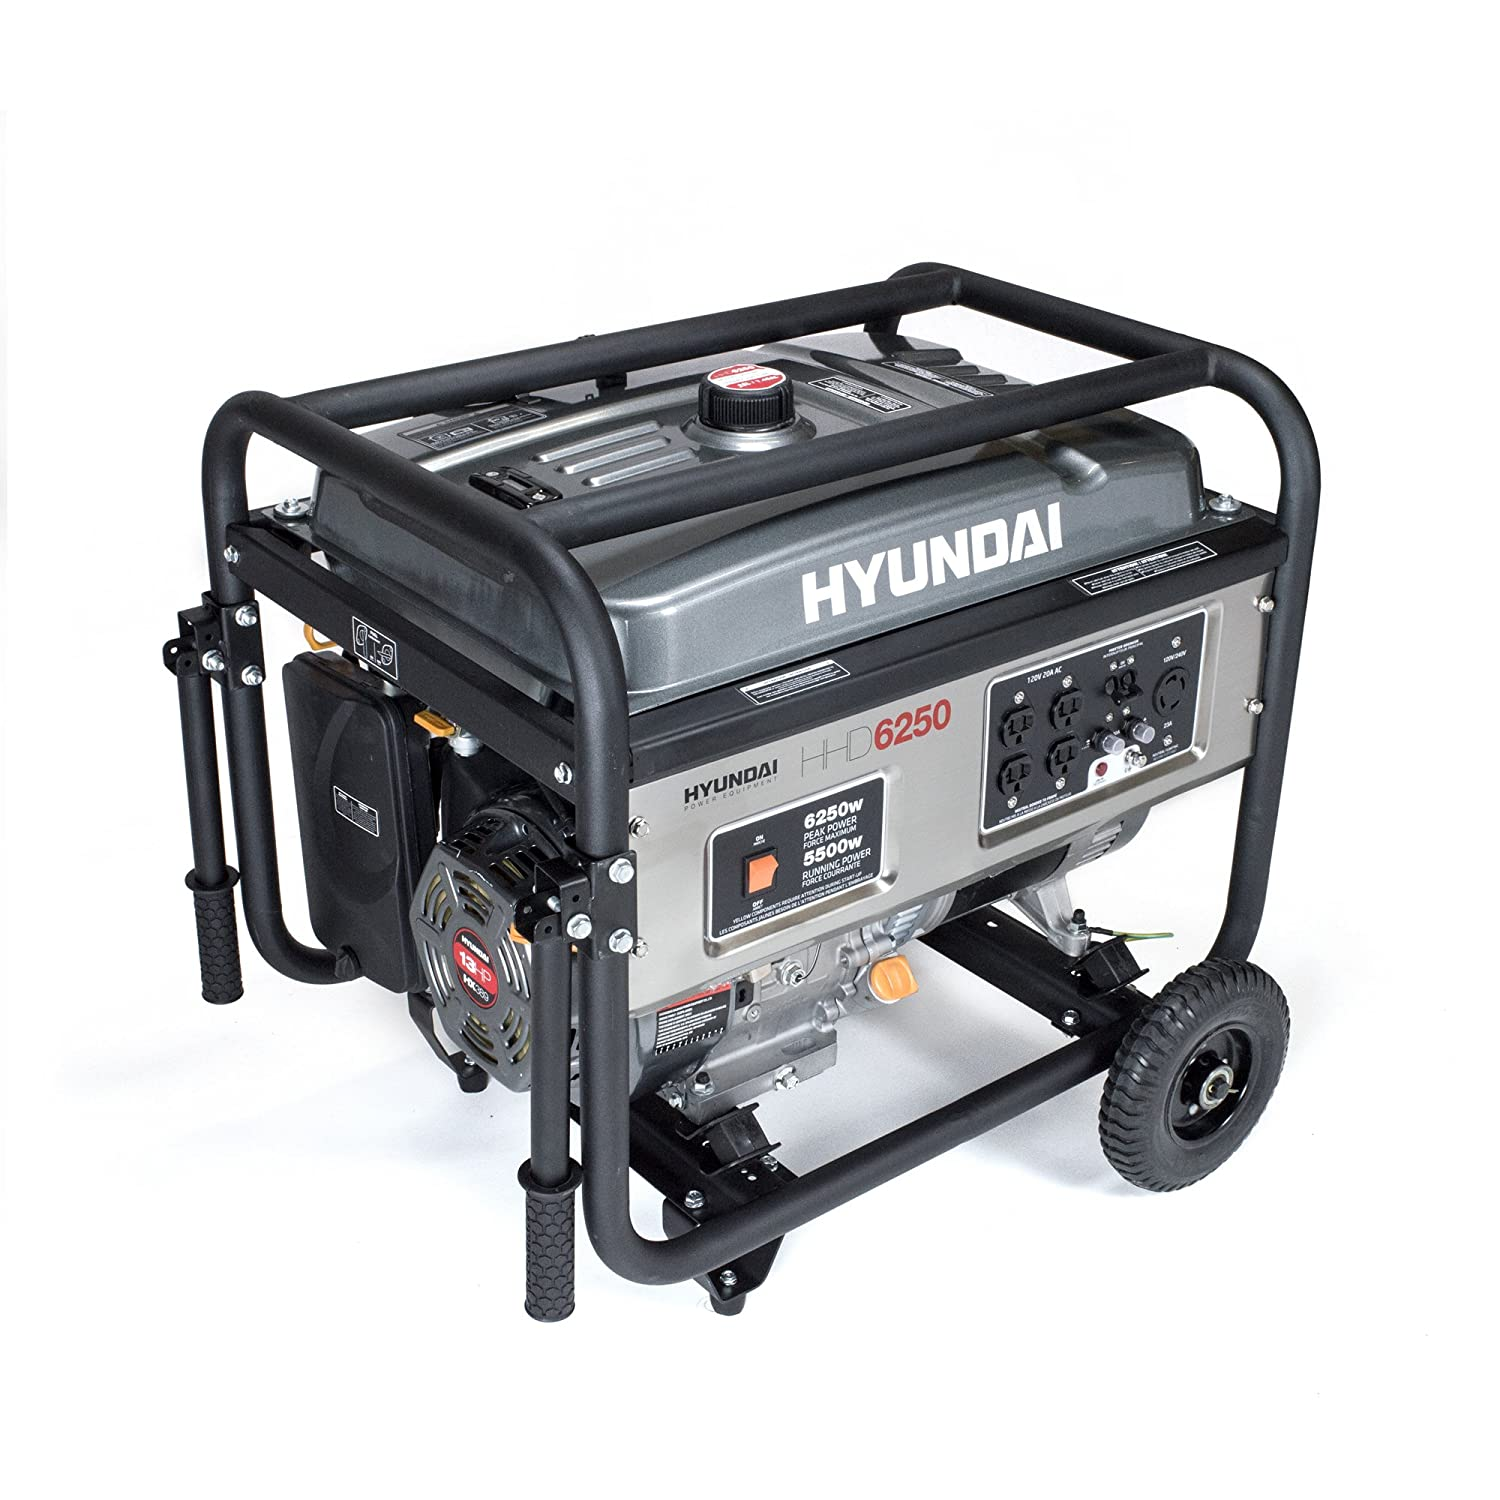 Amazon Hyundai HHD6250 6250 Watt 4 Stroke Portable Heavy